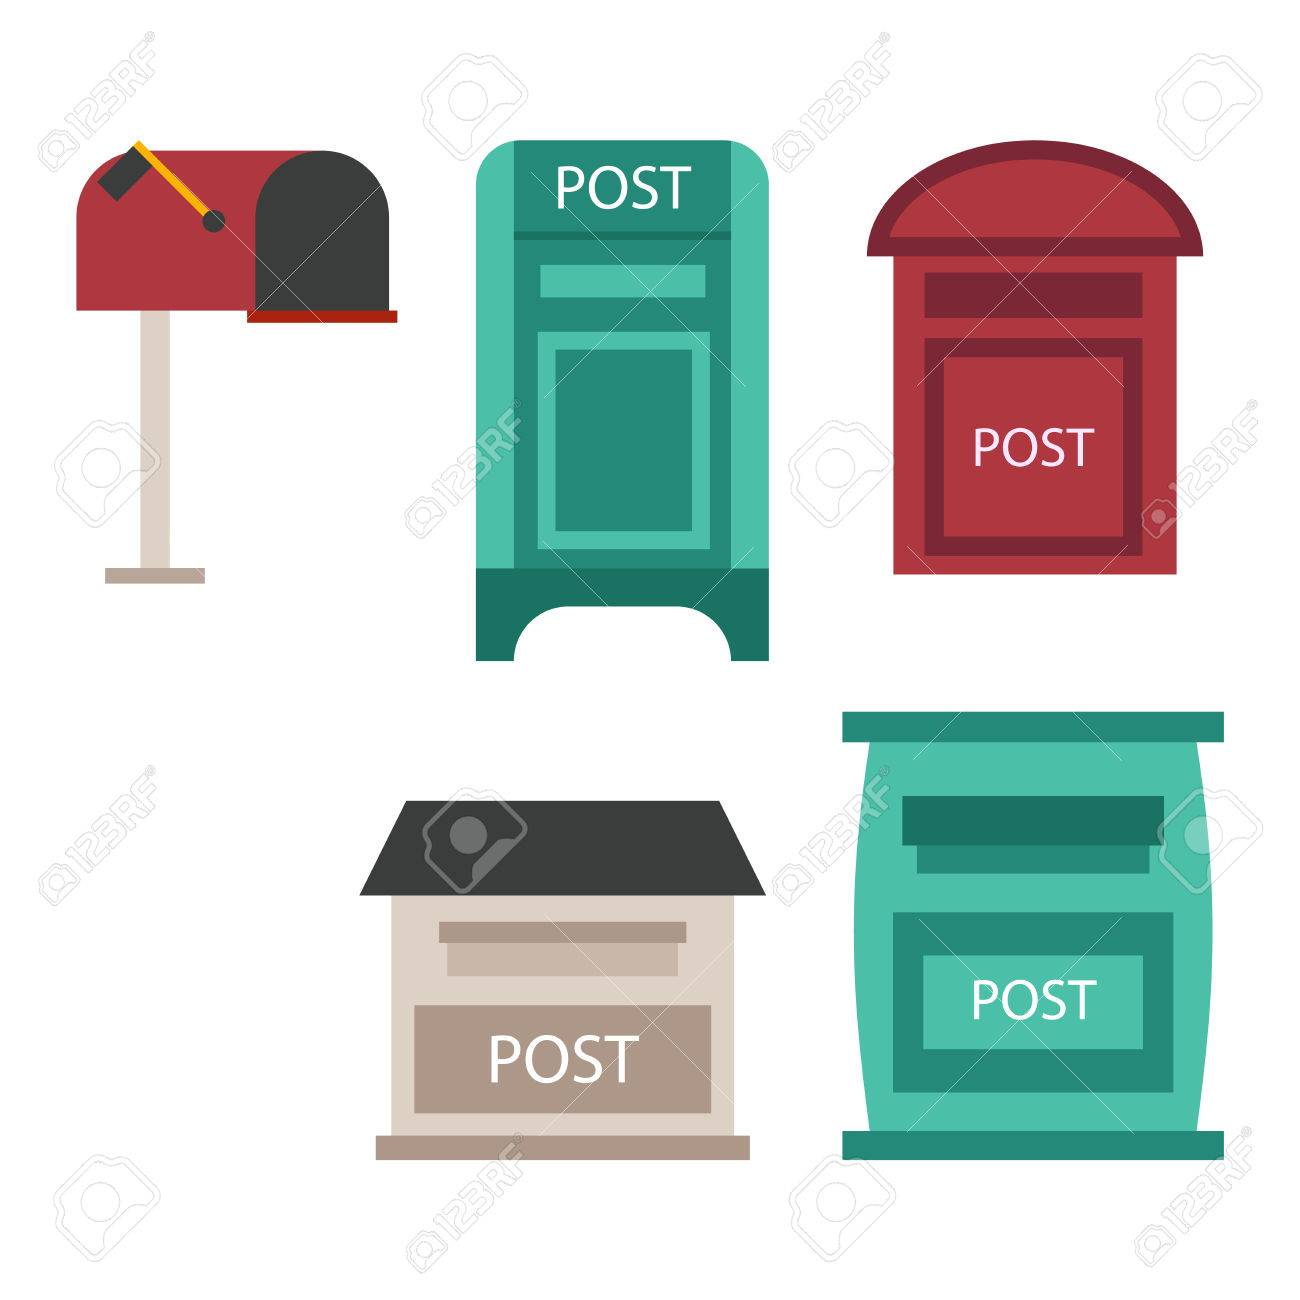 modern mailbox etsy. Beautiful Mailbox Modern Mailbox Etsy Closed Mailbox Beautiful Rural Curbside Open And  Mailboxes With Semaphore Flag On Modern Mailbox Etsy